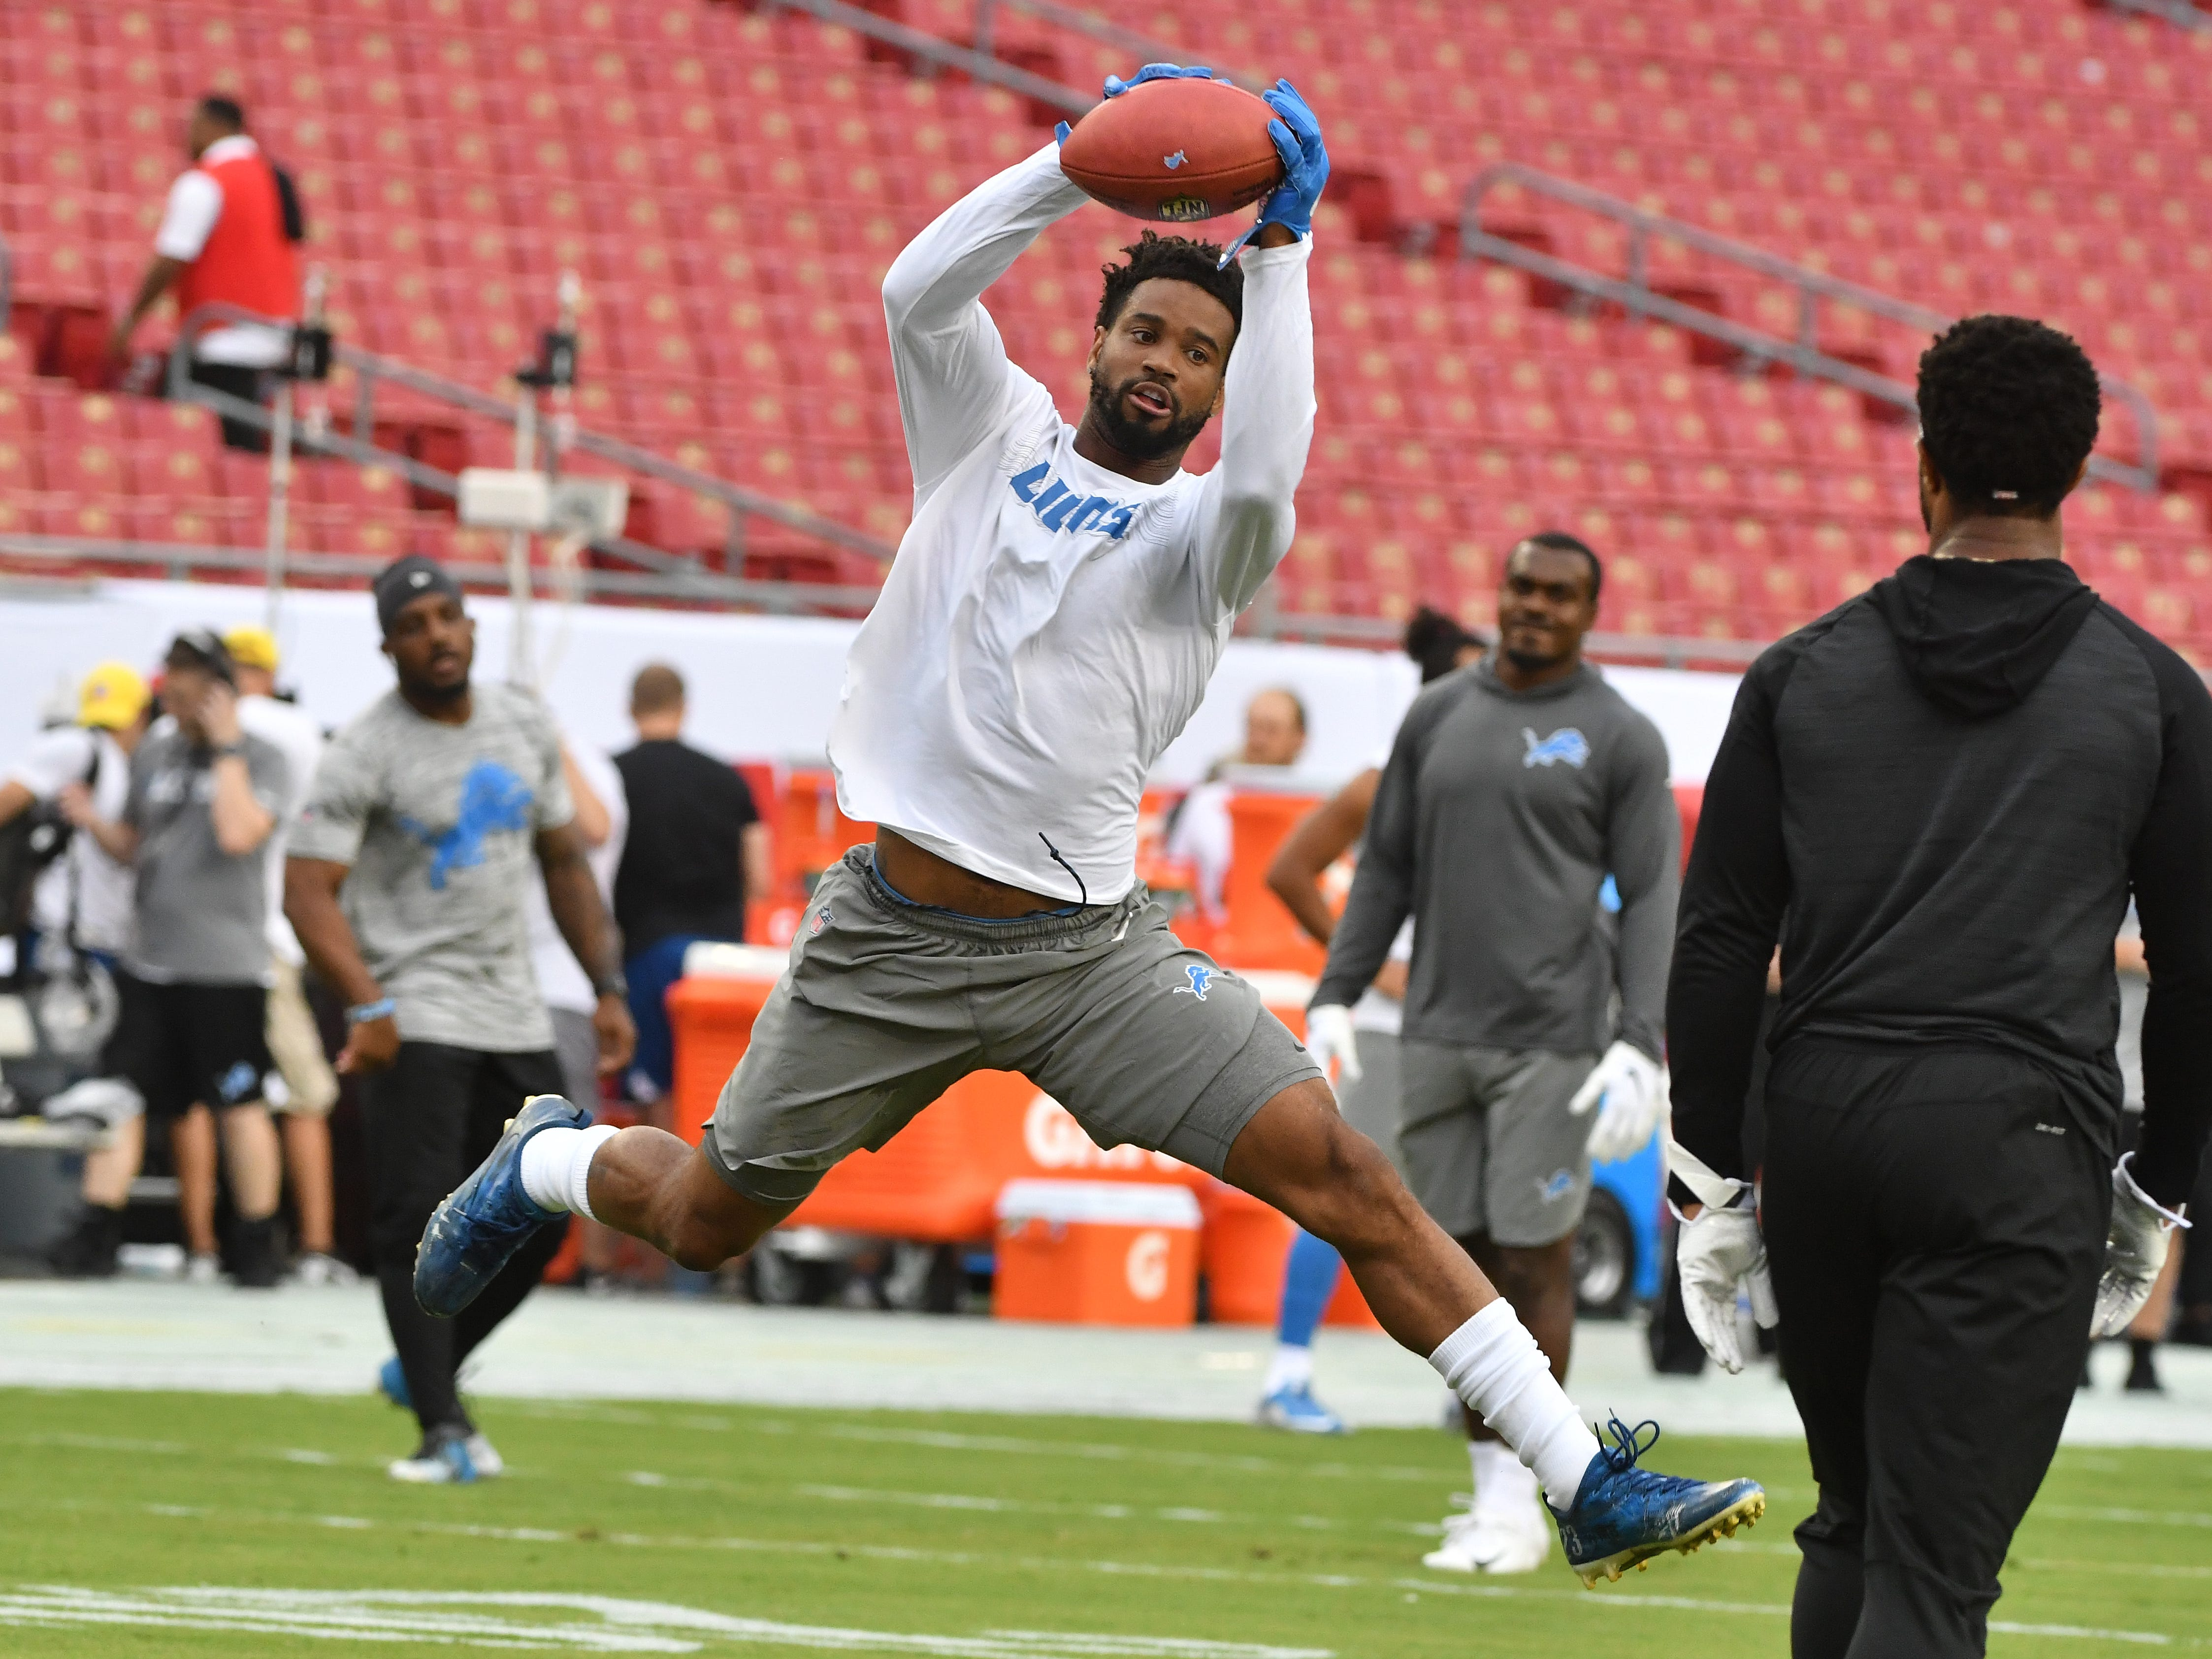 Lions corner back Darius Slay stretches out for a reception during drills.